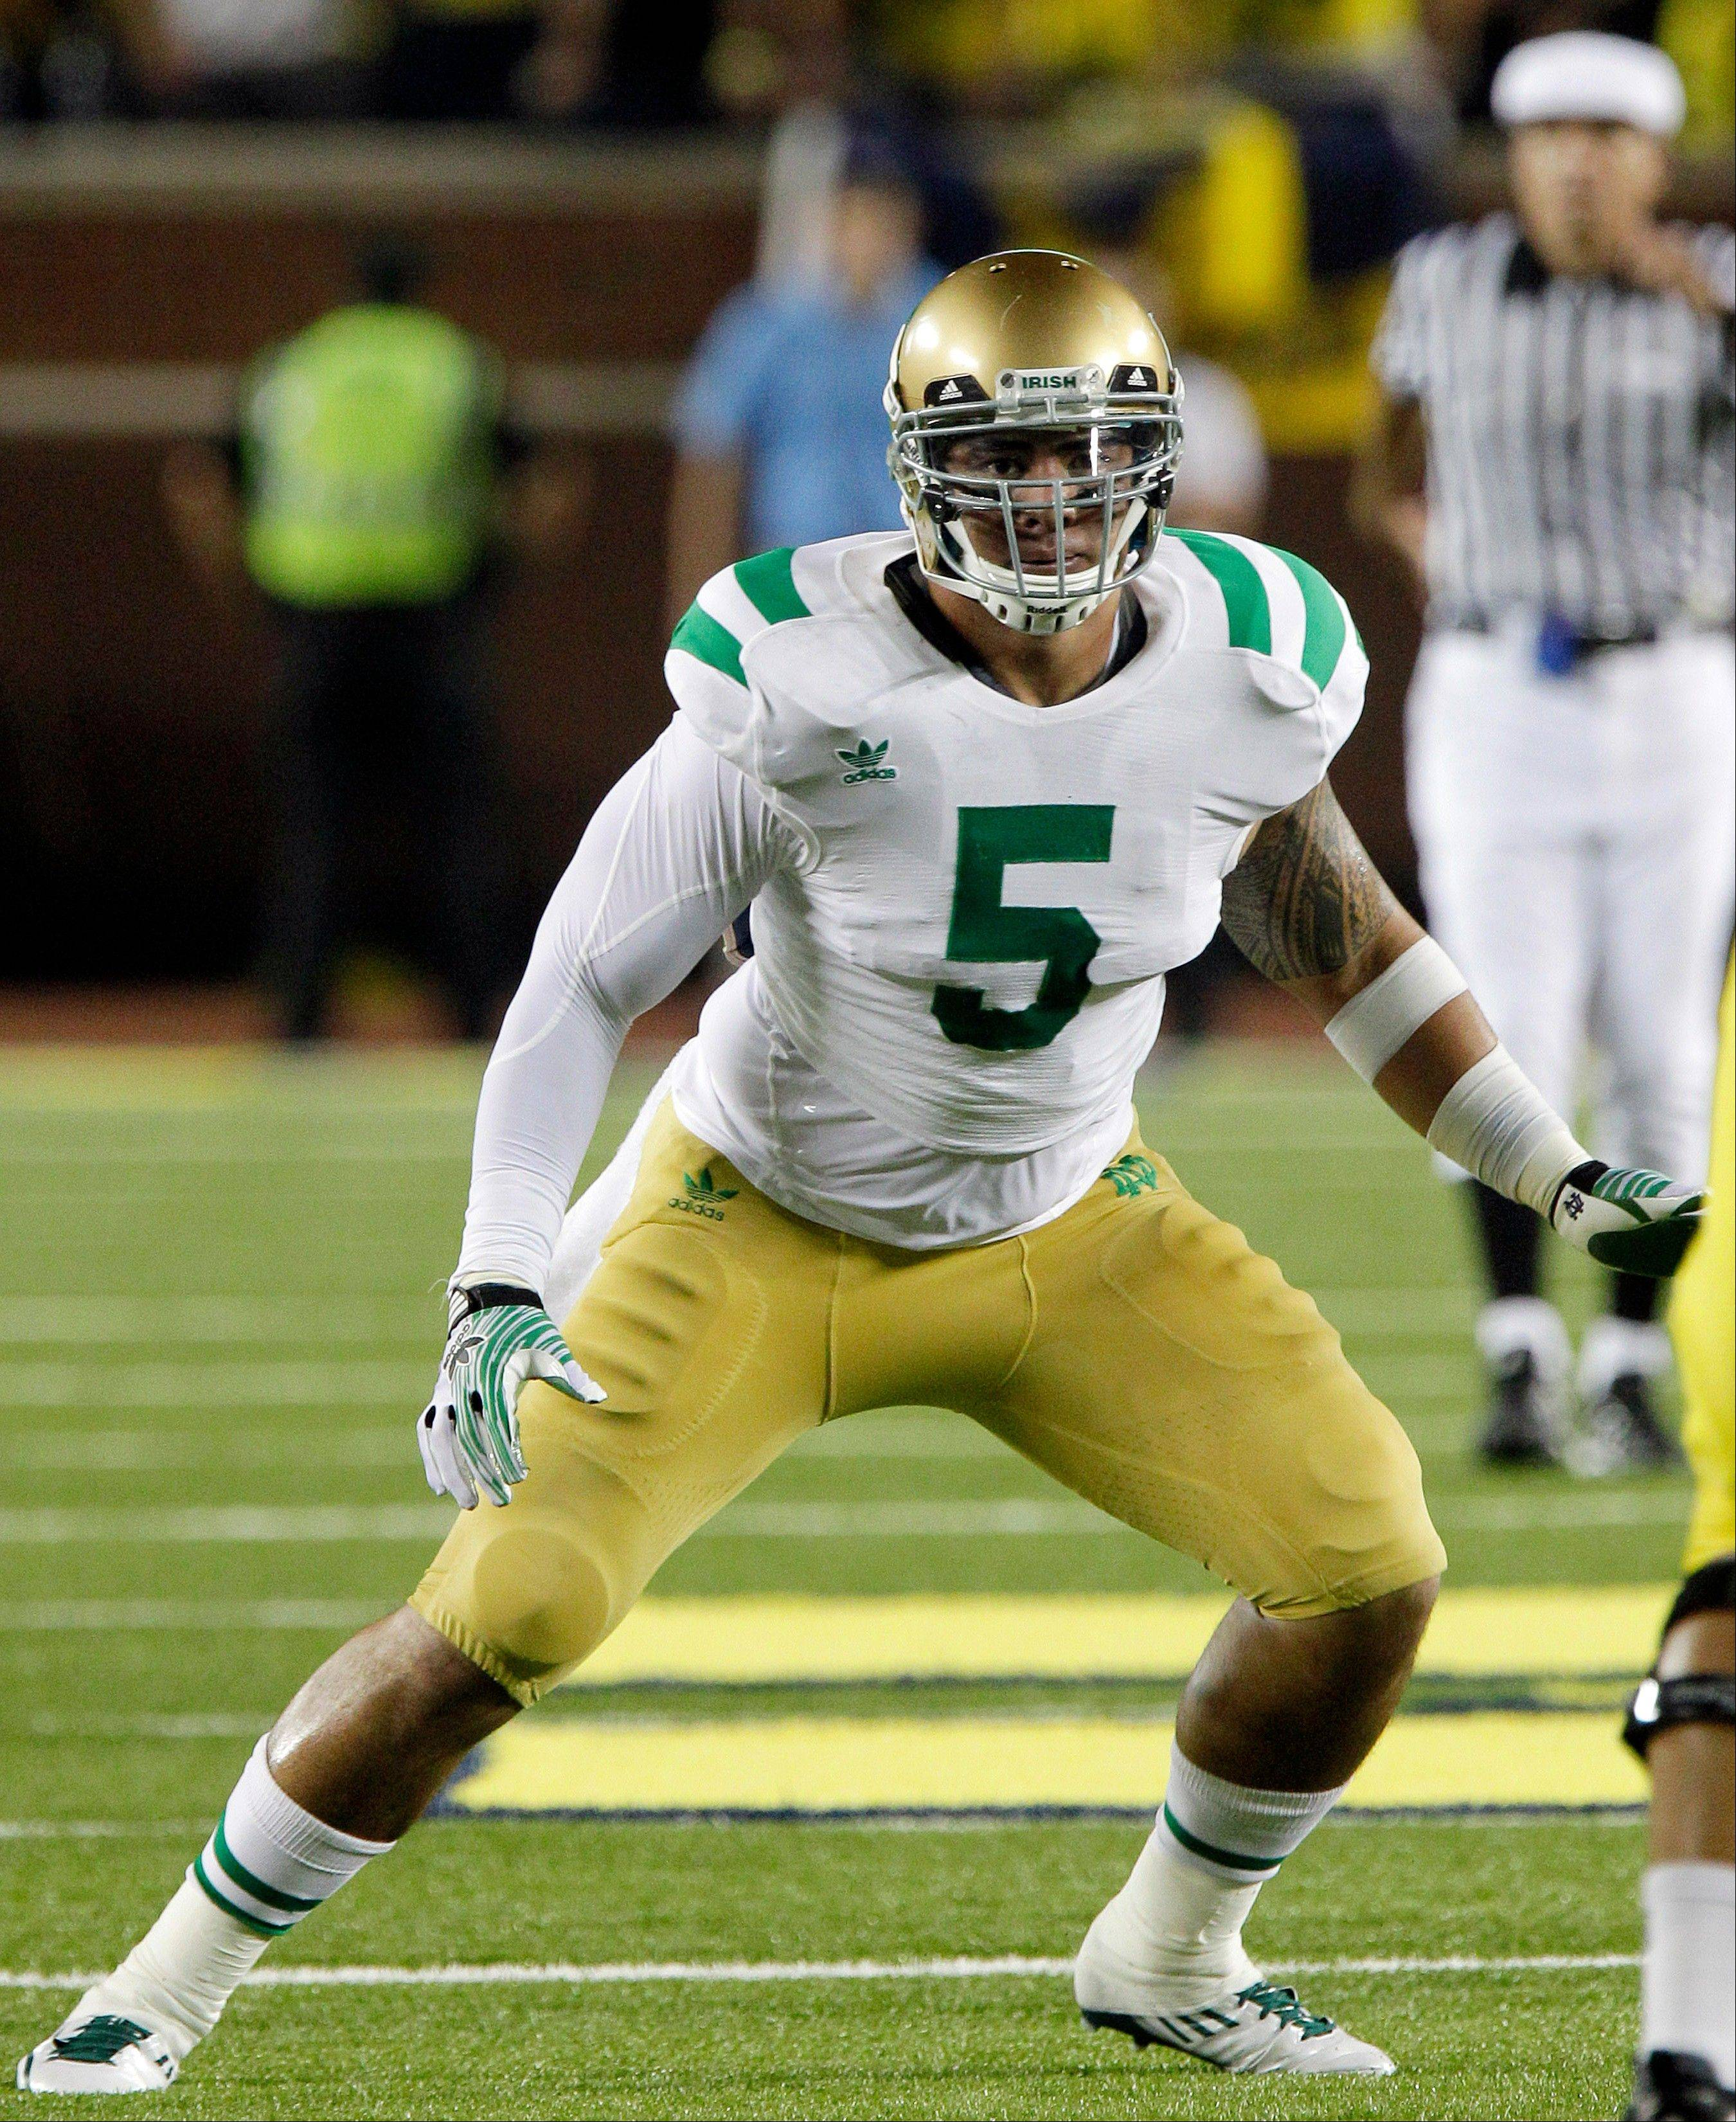 Notre Dame linebacker Manti Te'o enters the season as the No. 8 tackler in school history with 324. He made 128 last season and 133 as a sophomore, combining speed, instinct and a determined approach to keep improving.